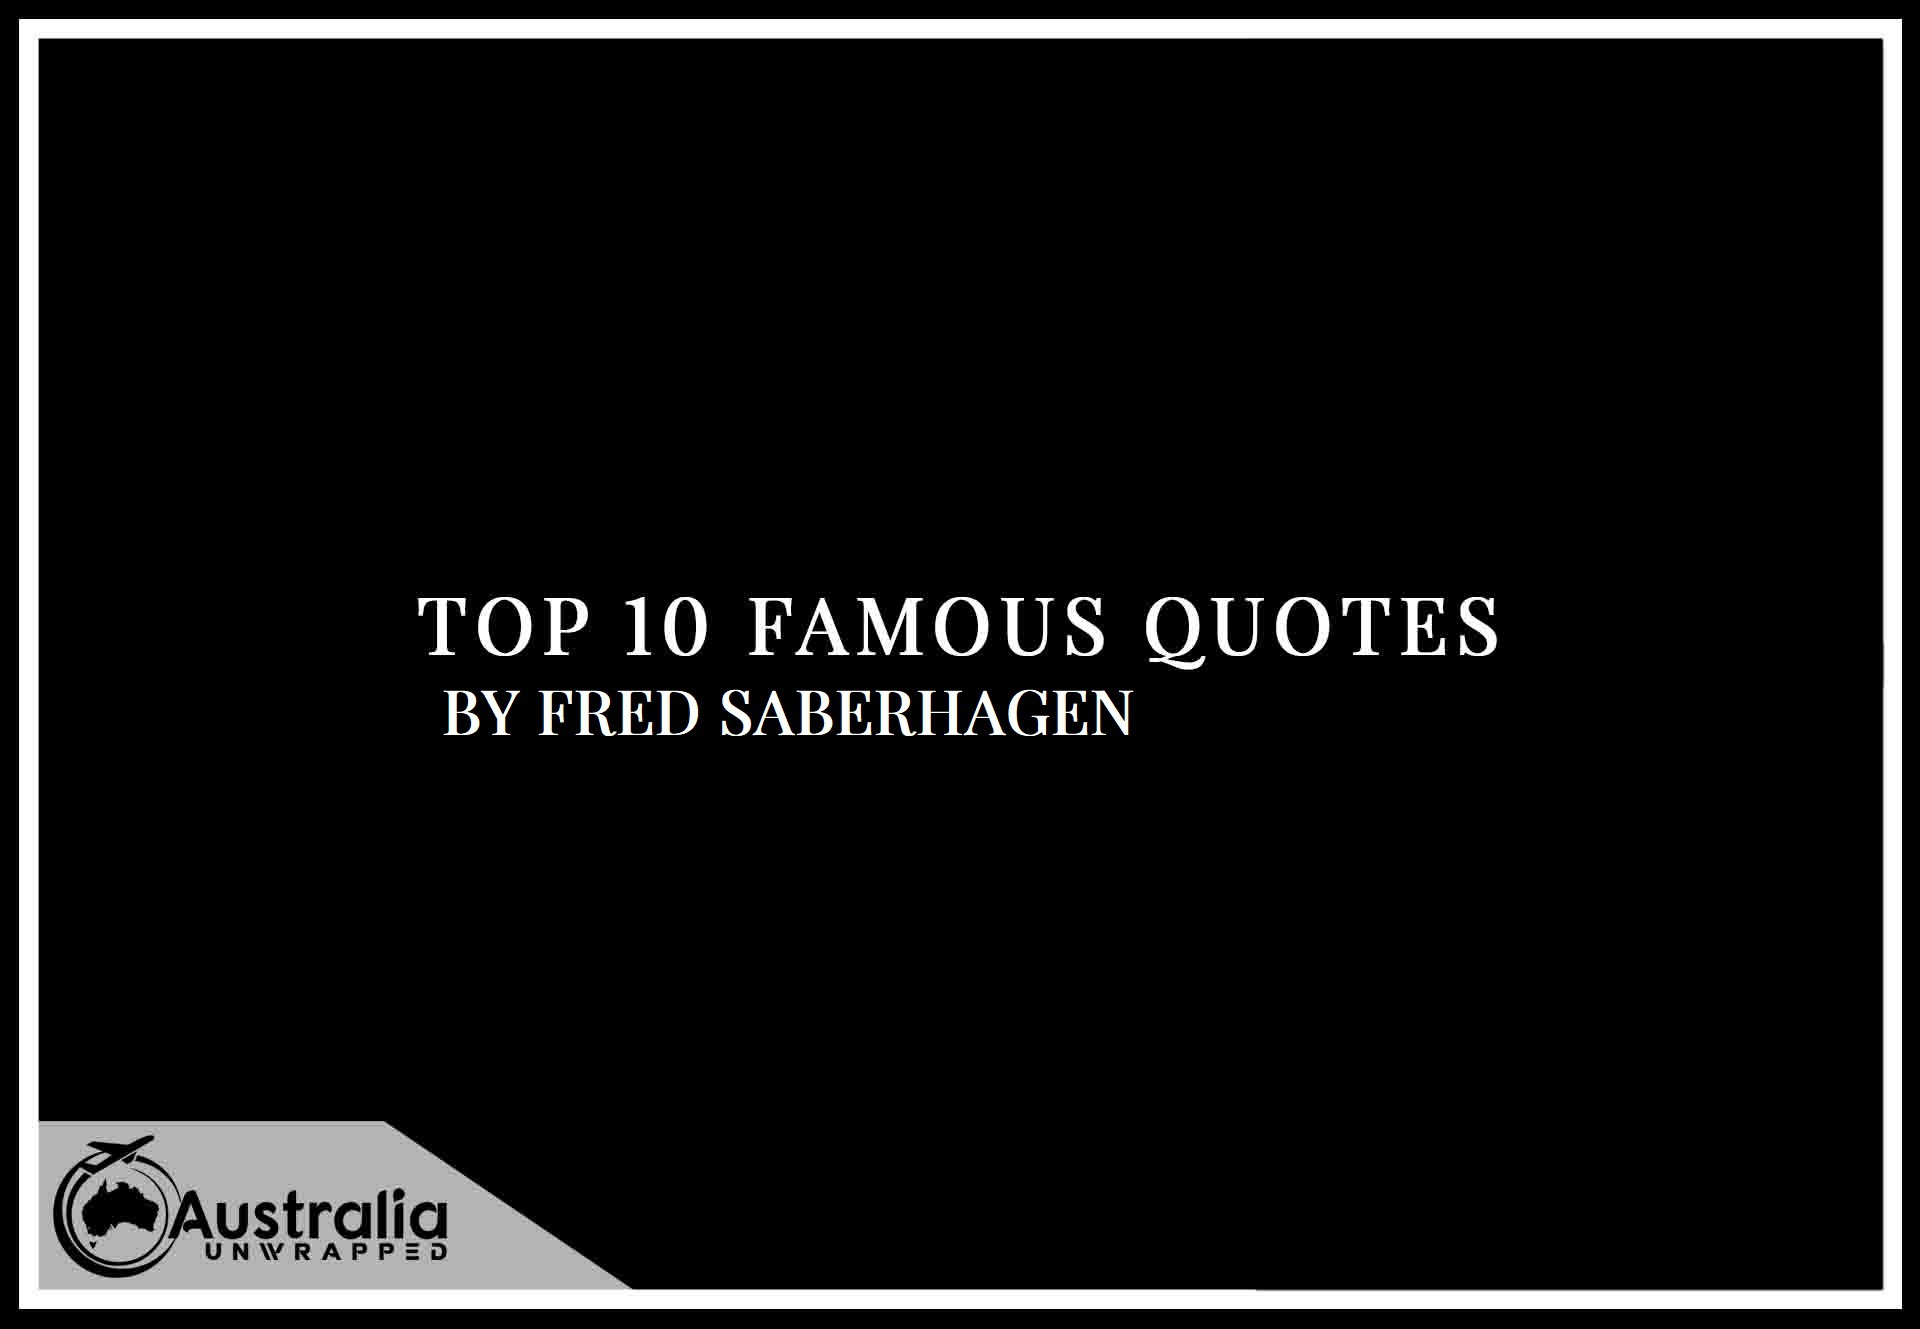 Top 10 Famous Quotes by Author Fred Saberhagen